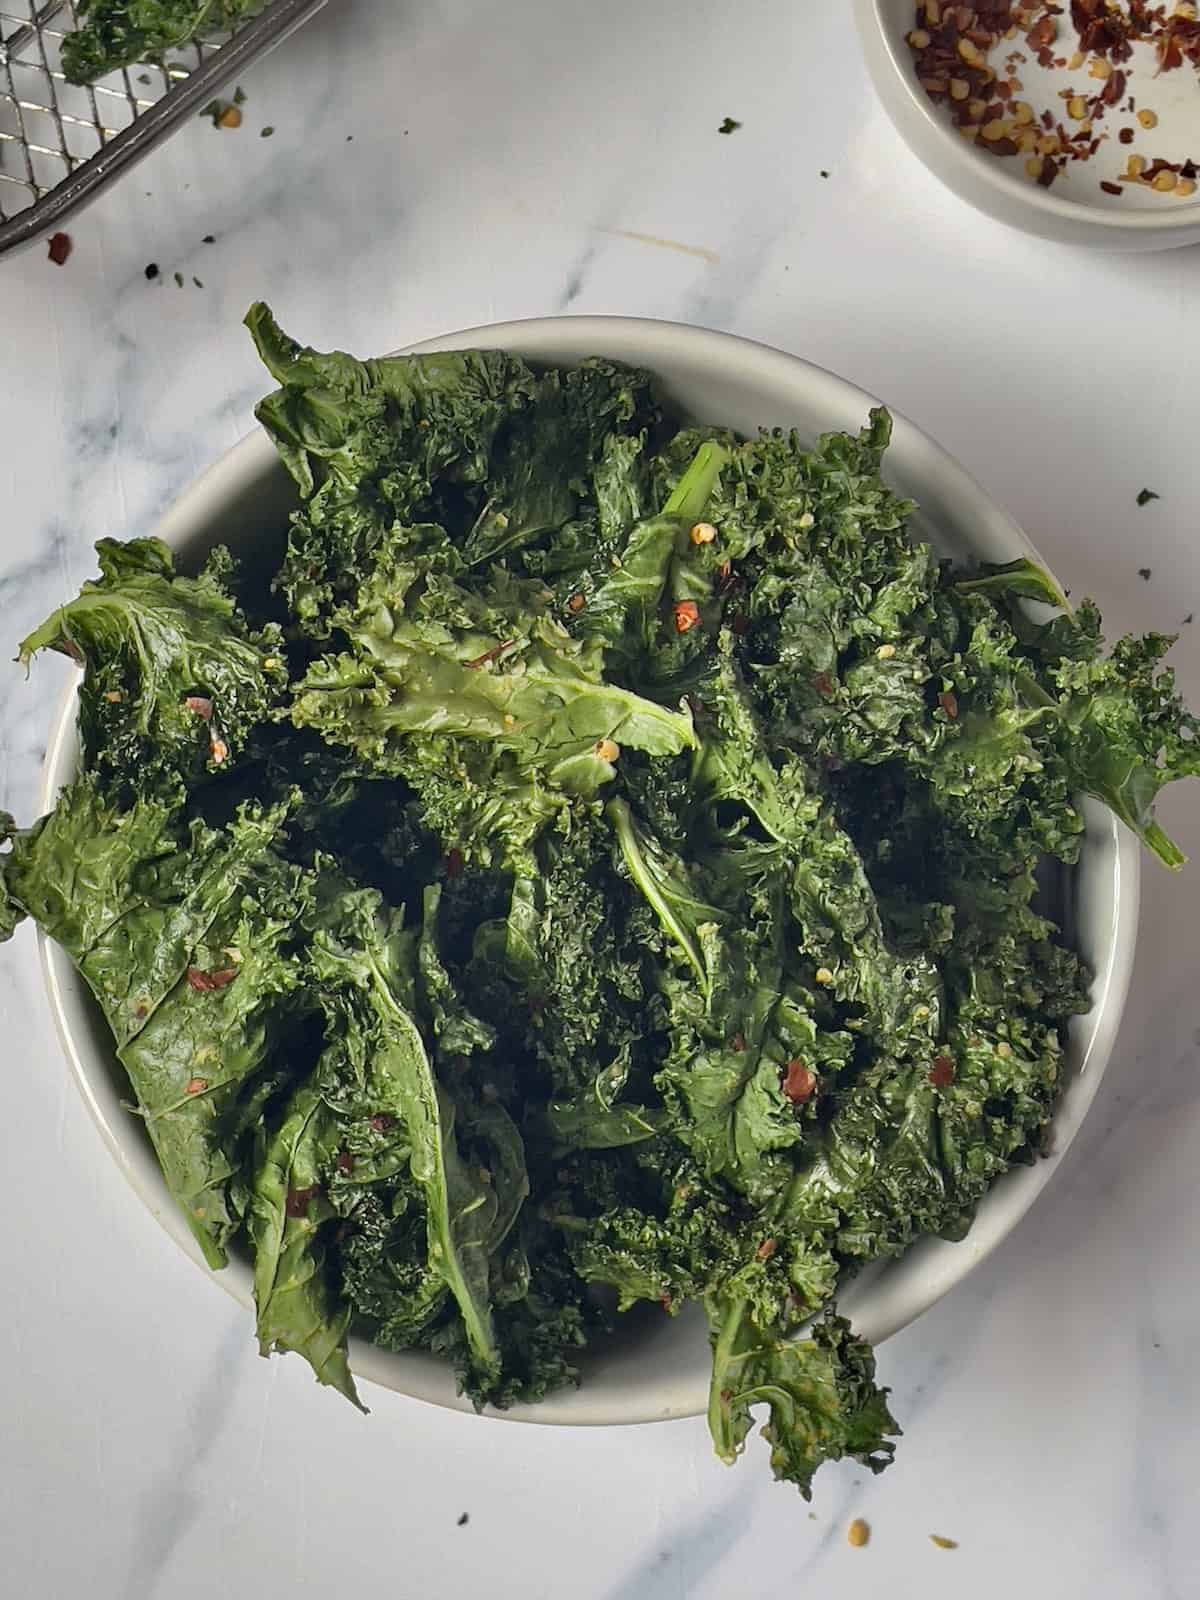 kale chips in a white bowl topped with red pepper flakes